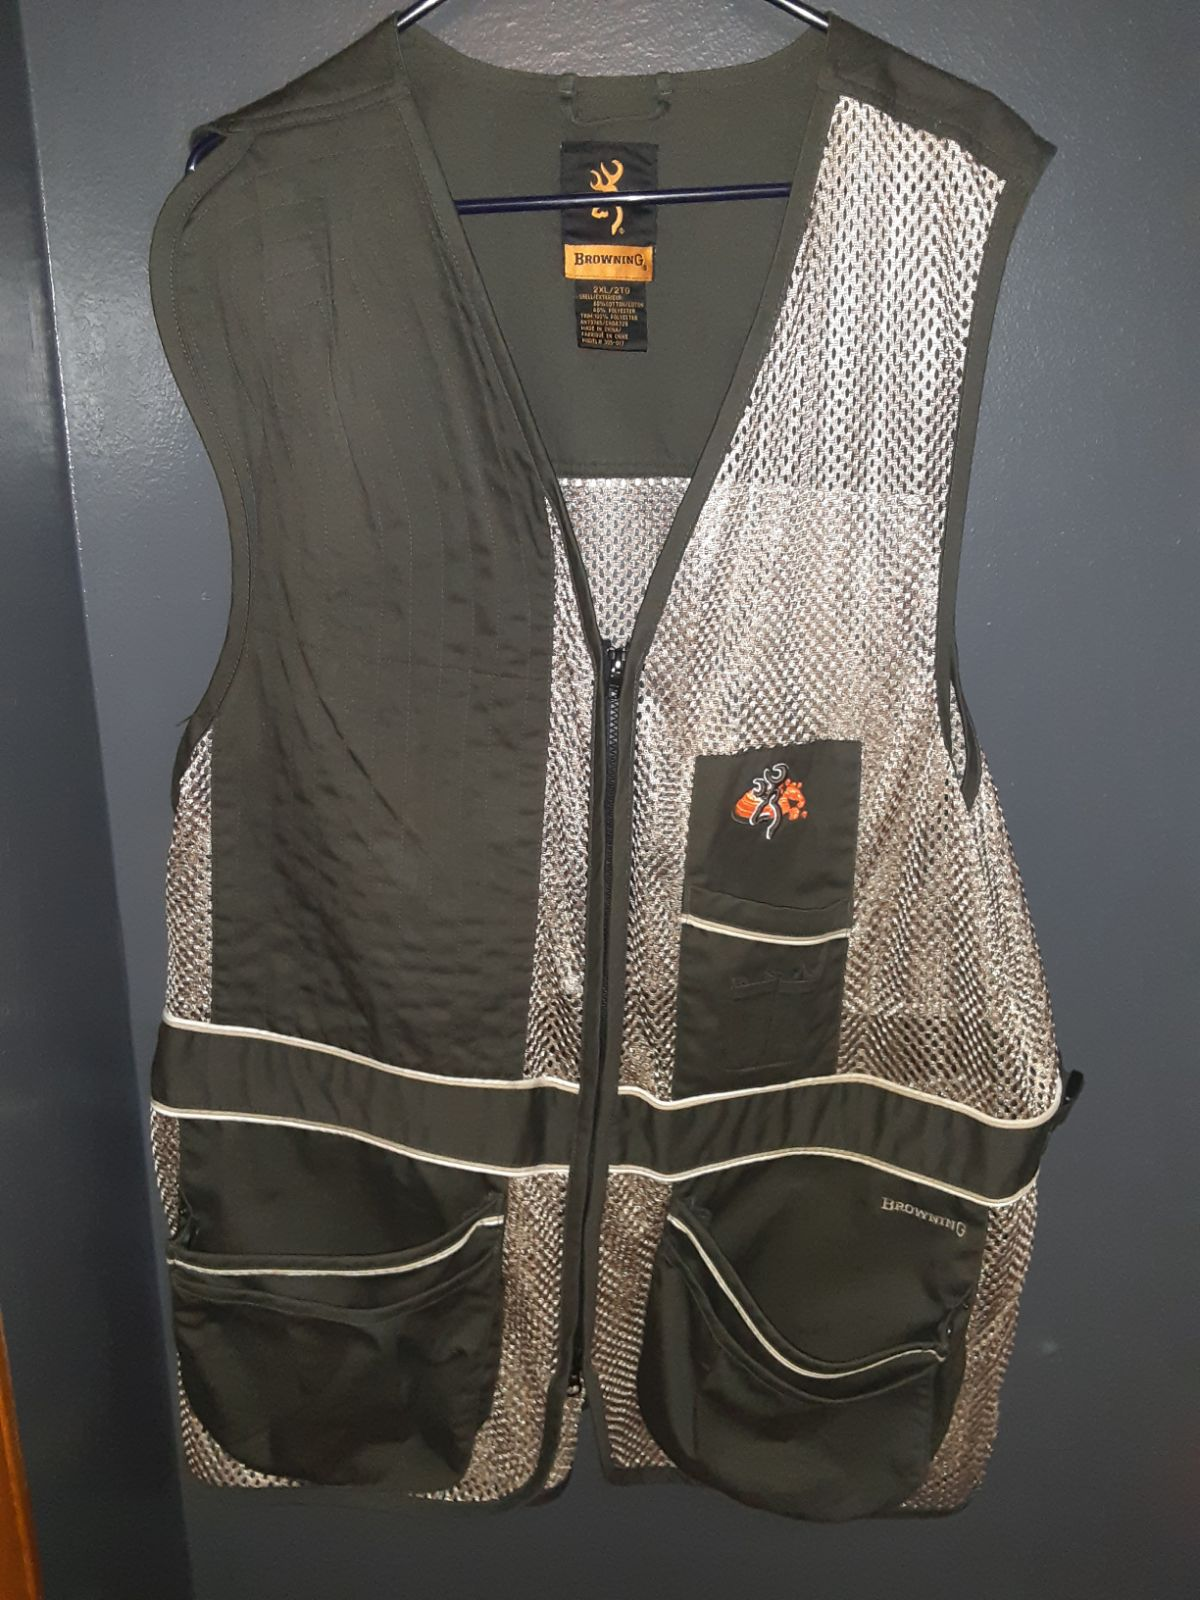 Browning sporting clay vest